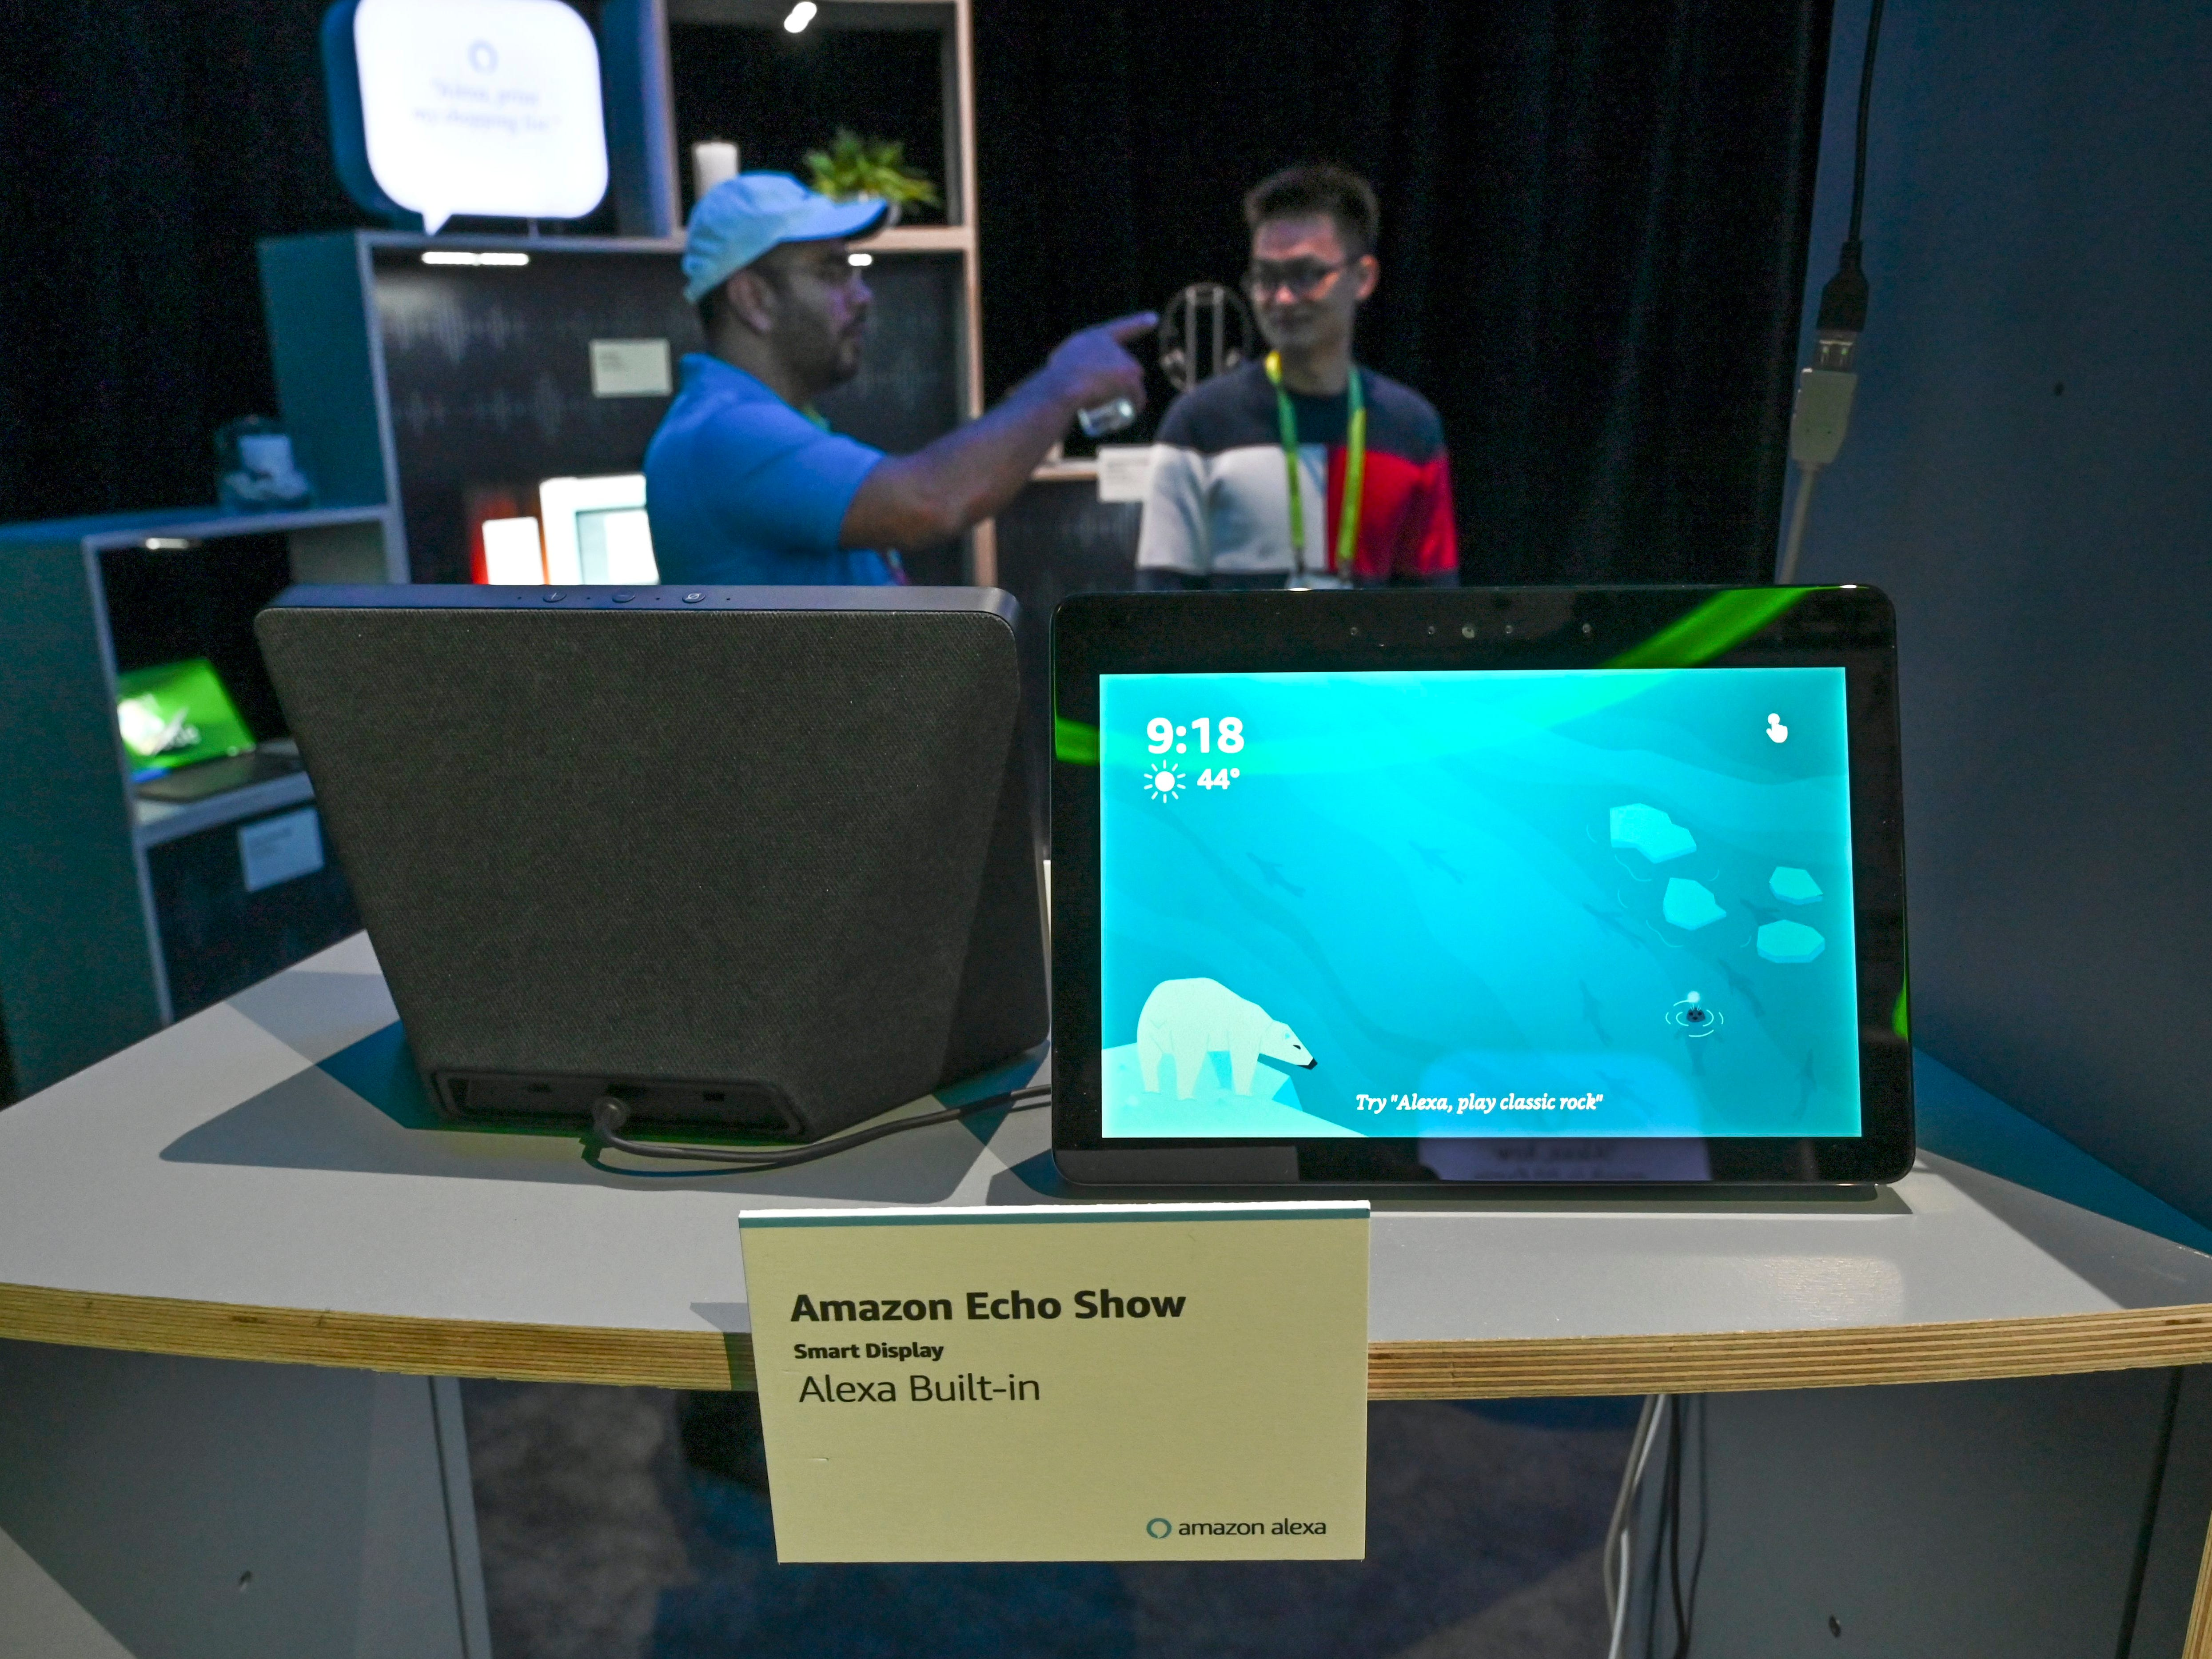 One of several demonstration displays showing off Alexa enabled devices.